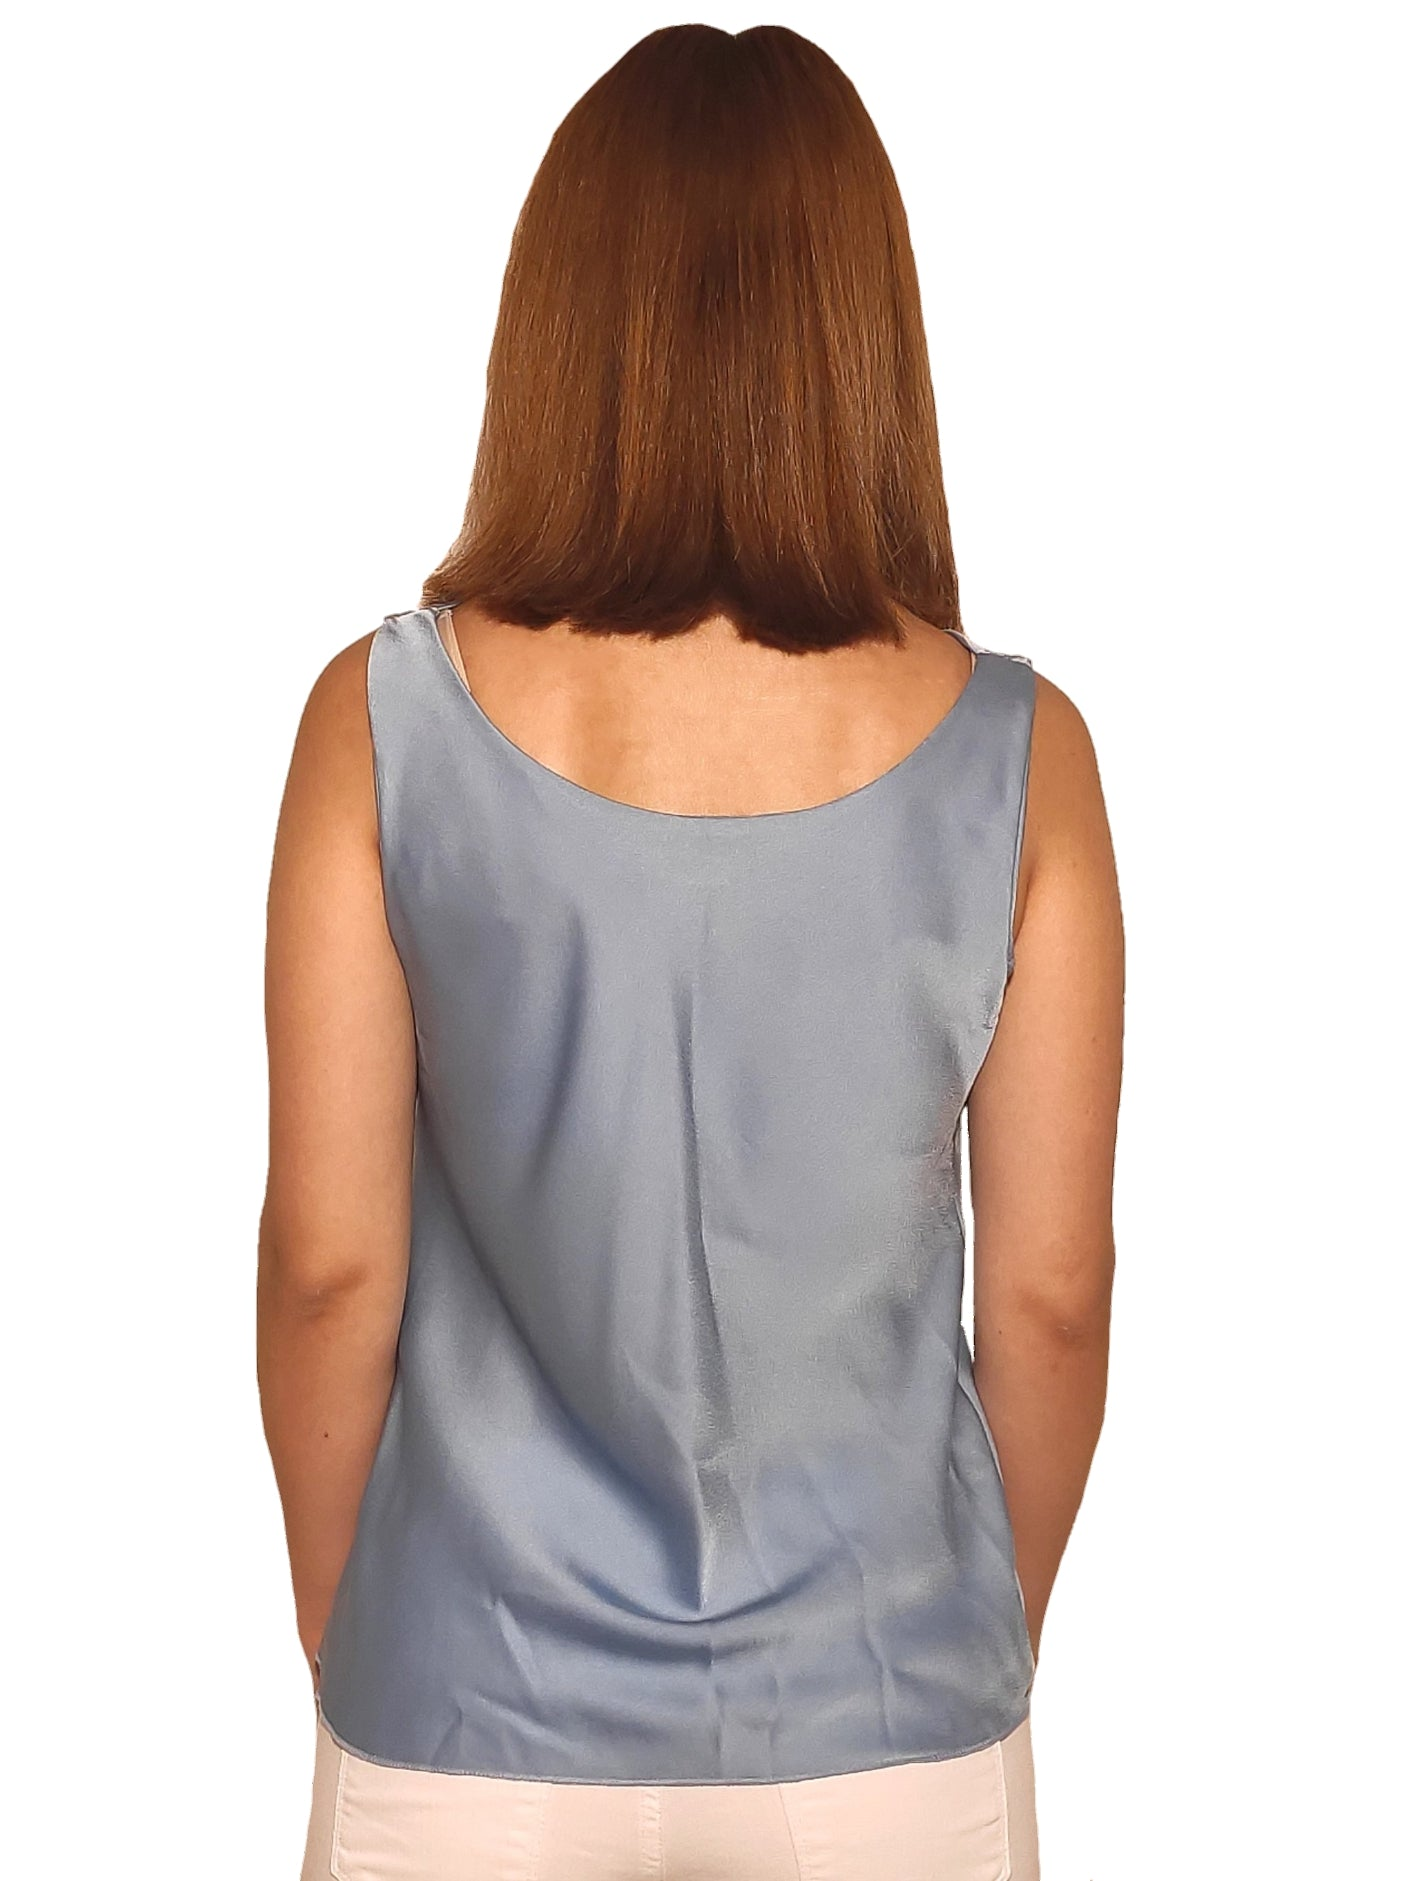 brunet-girl-wears-a-sleeveless-tirquoise-blouse-with-satin-texture-back